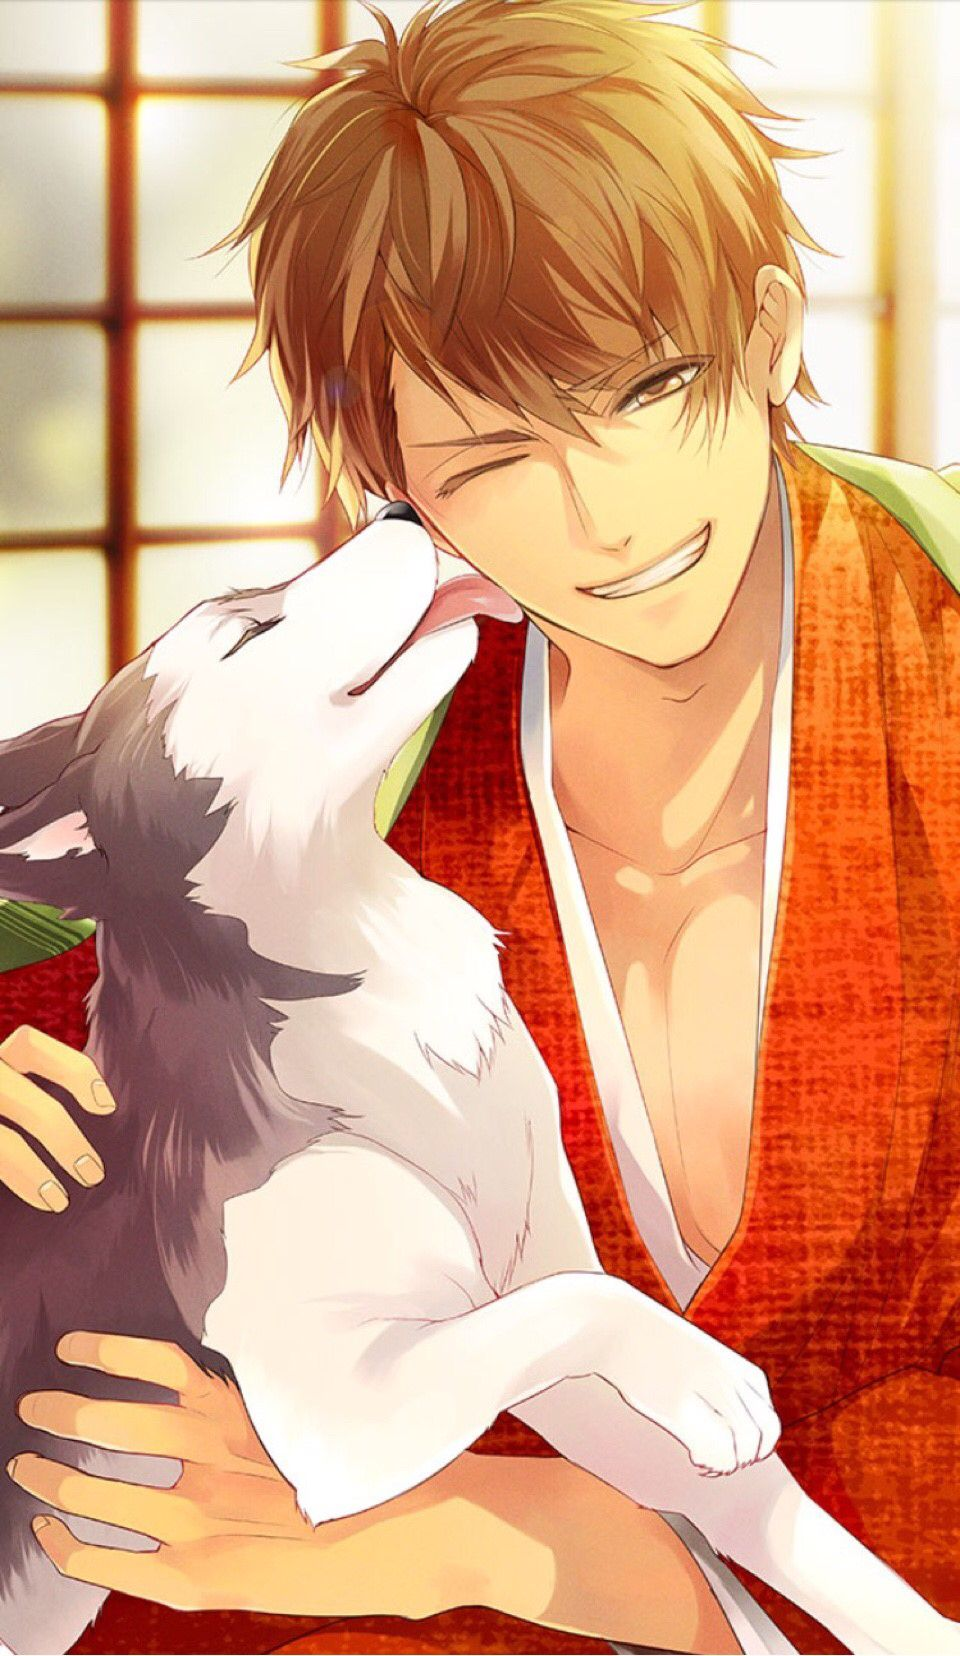 Pin by Nadia Singh on 이케맨 | Anime puppy, Anime, Cool anime guys